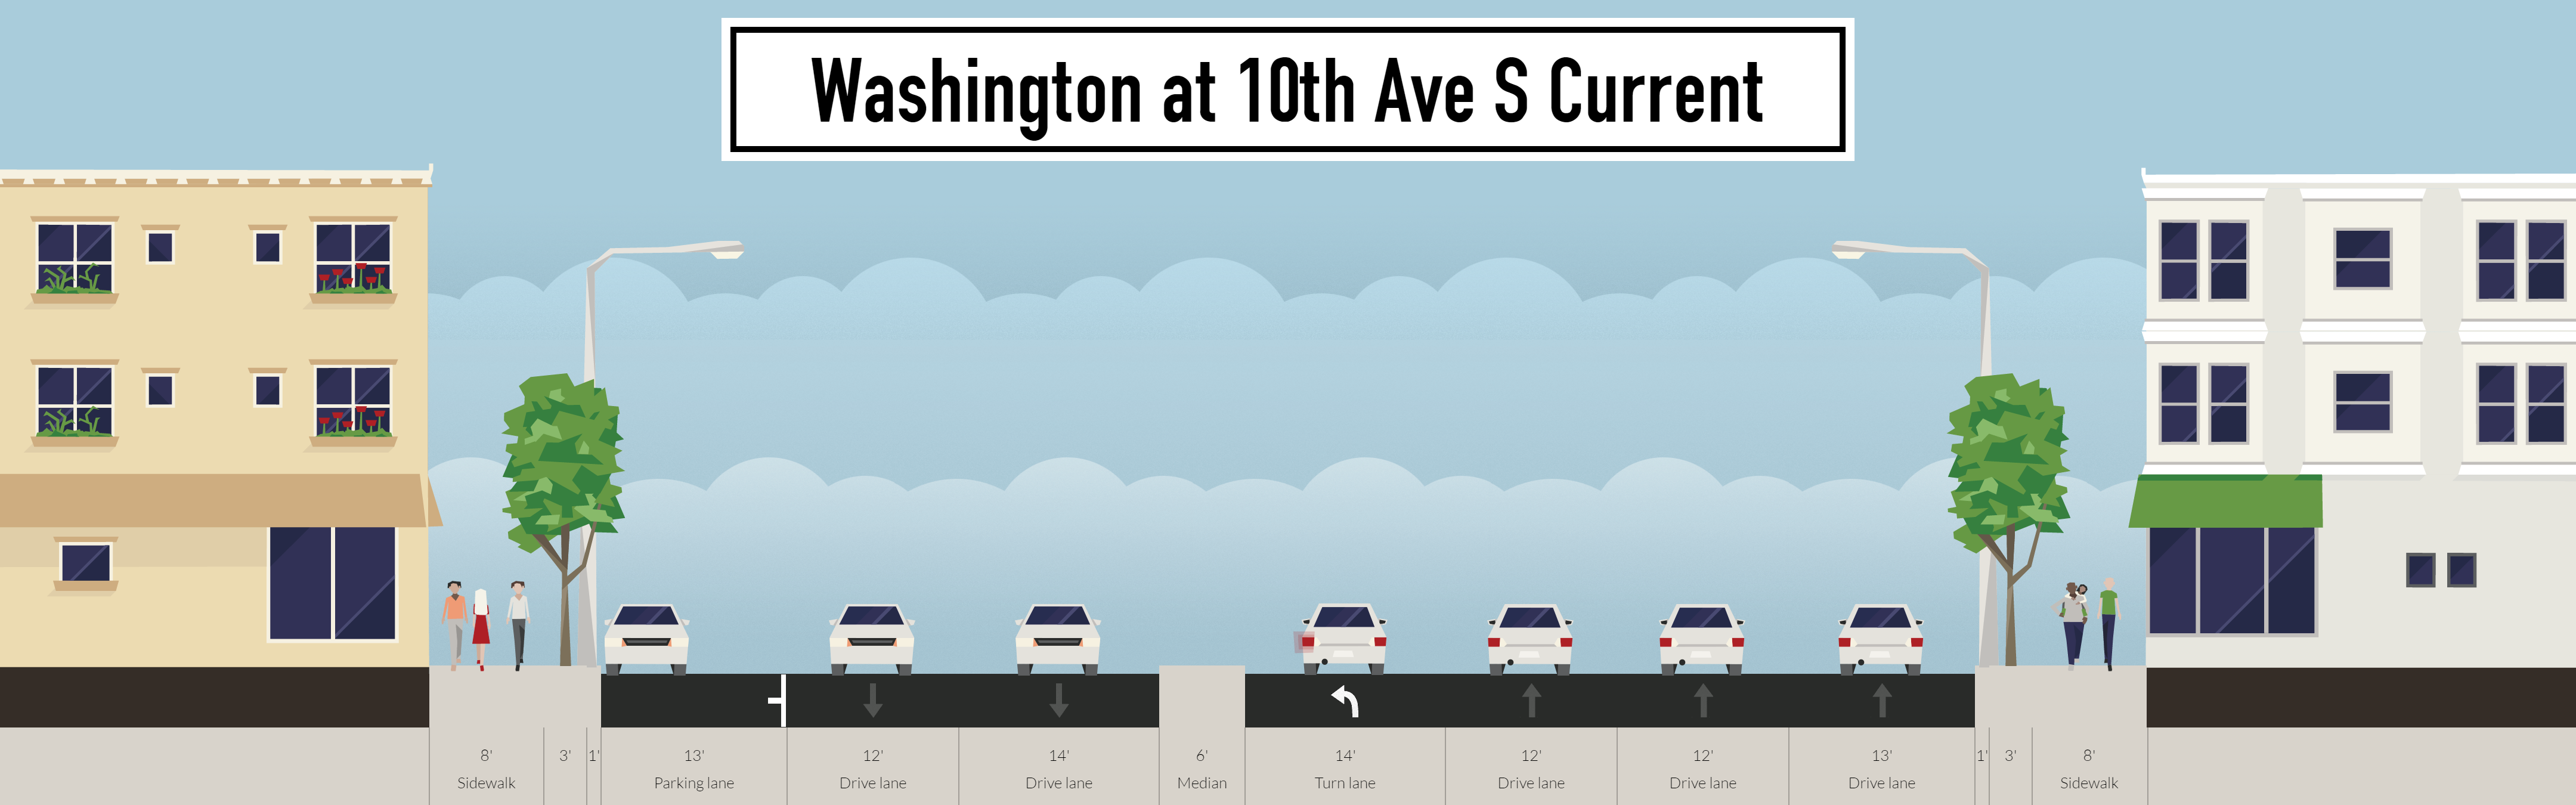 washington-at-10th-ave-s-current.png